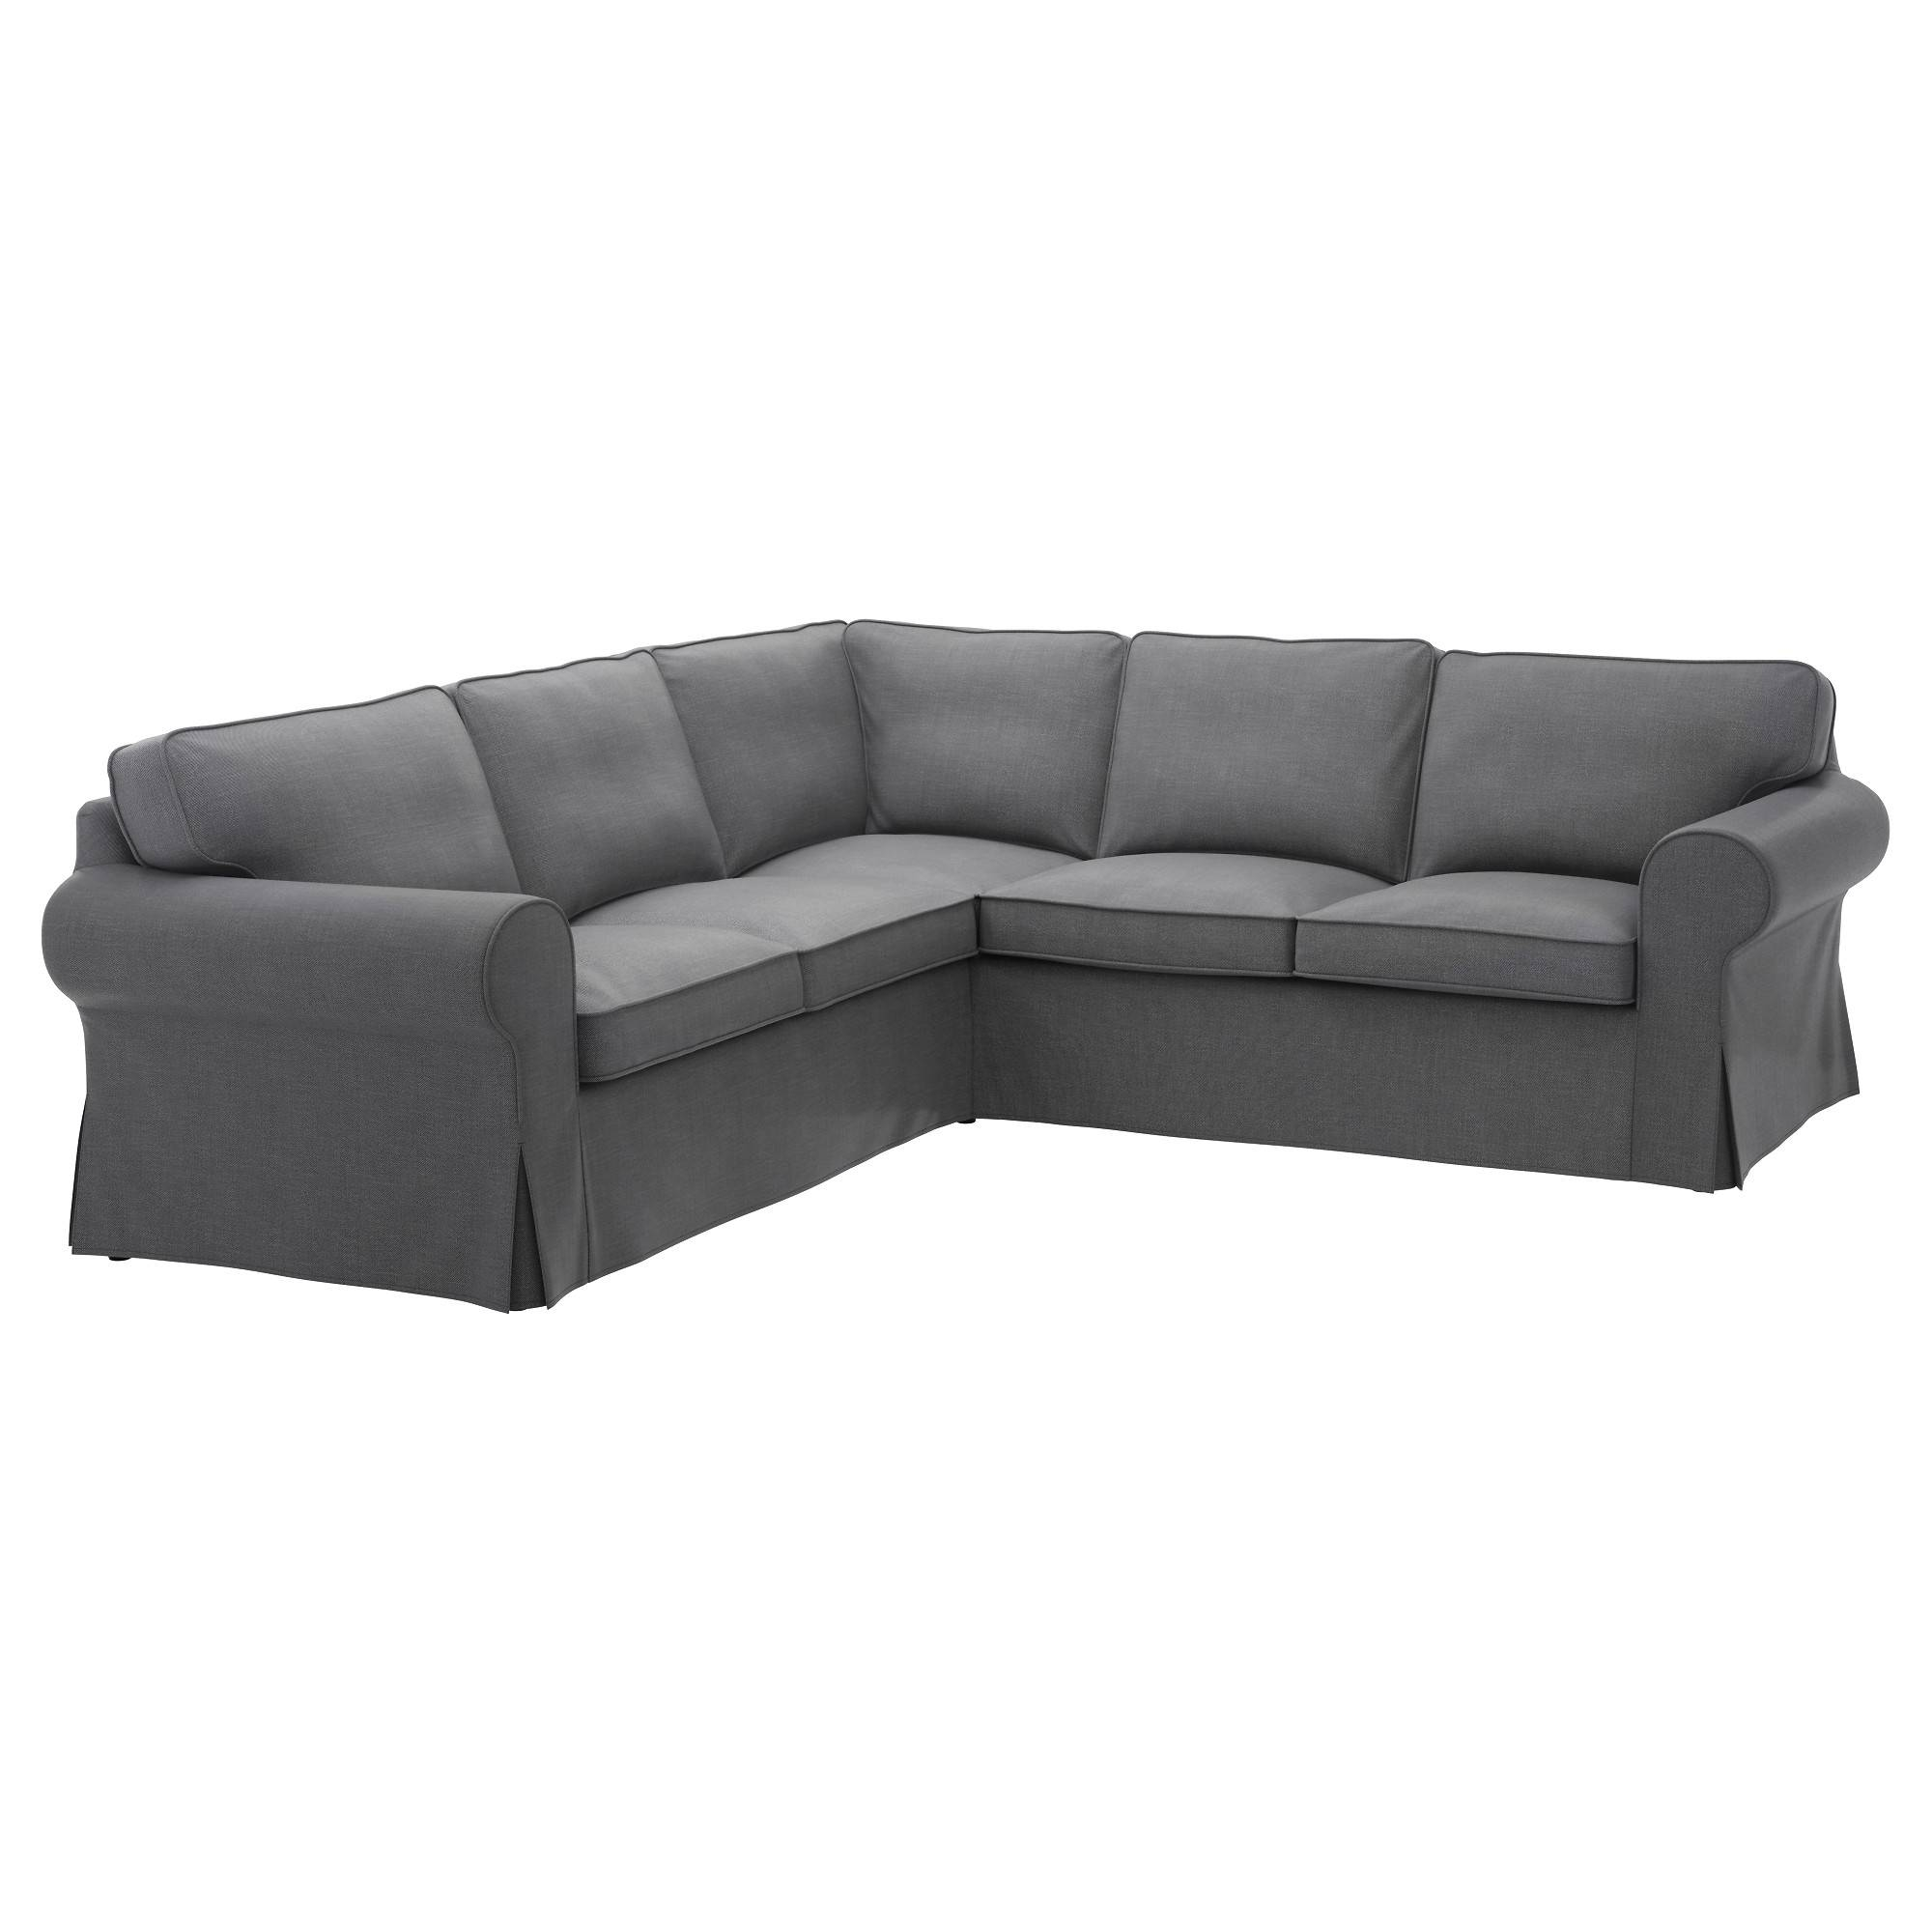 Fabric Sofas - Modern & Contemporary - Ikea with Fabric Sofas (Image 9 of 30)